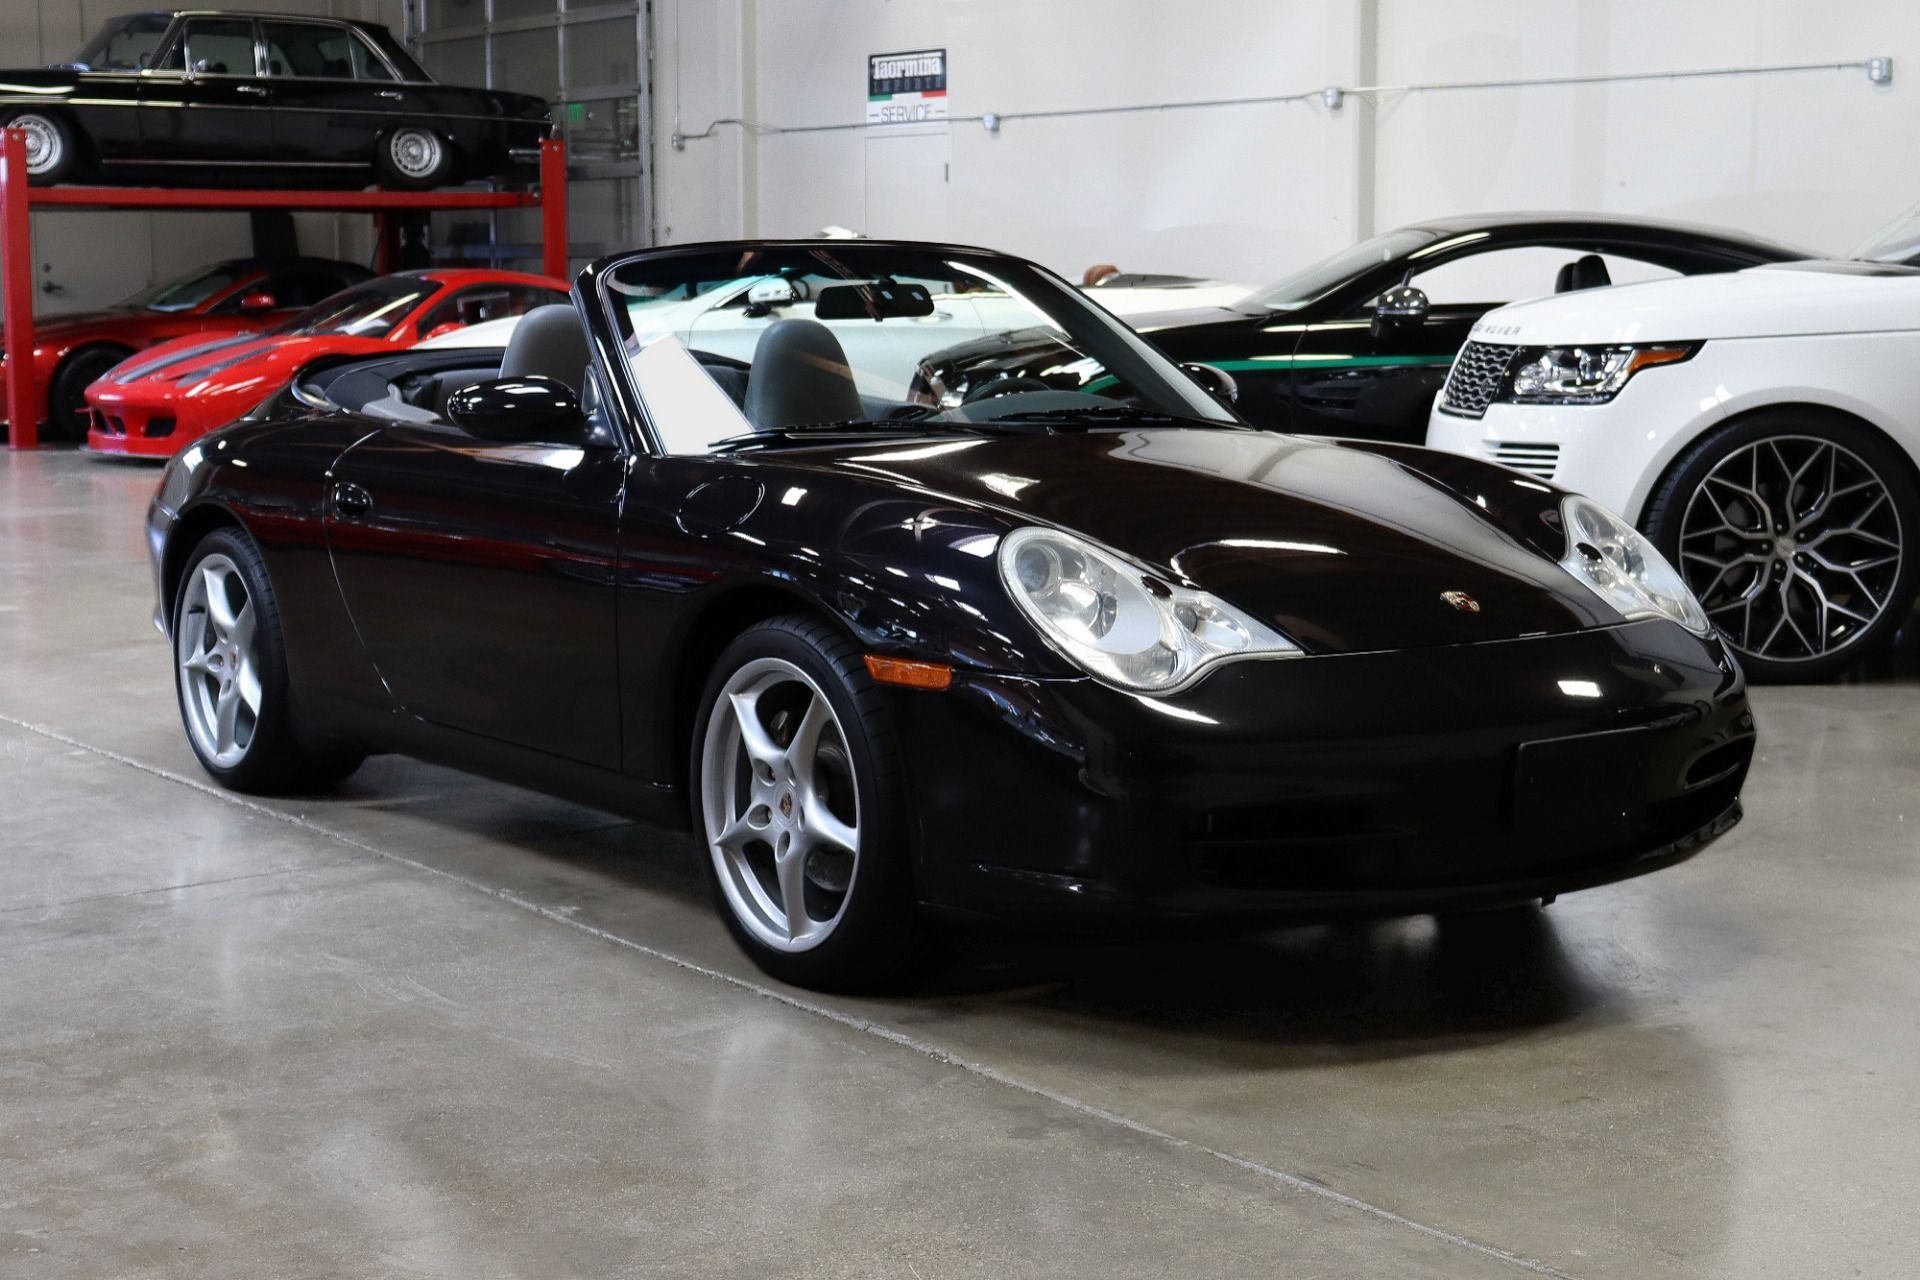 Used 2002 Porsche 911 Carrera 4 Cabriolet for sale Sold at San Francisco Sports Cars in San Carlos CA 94070 1